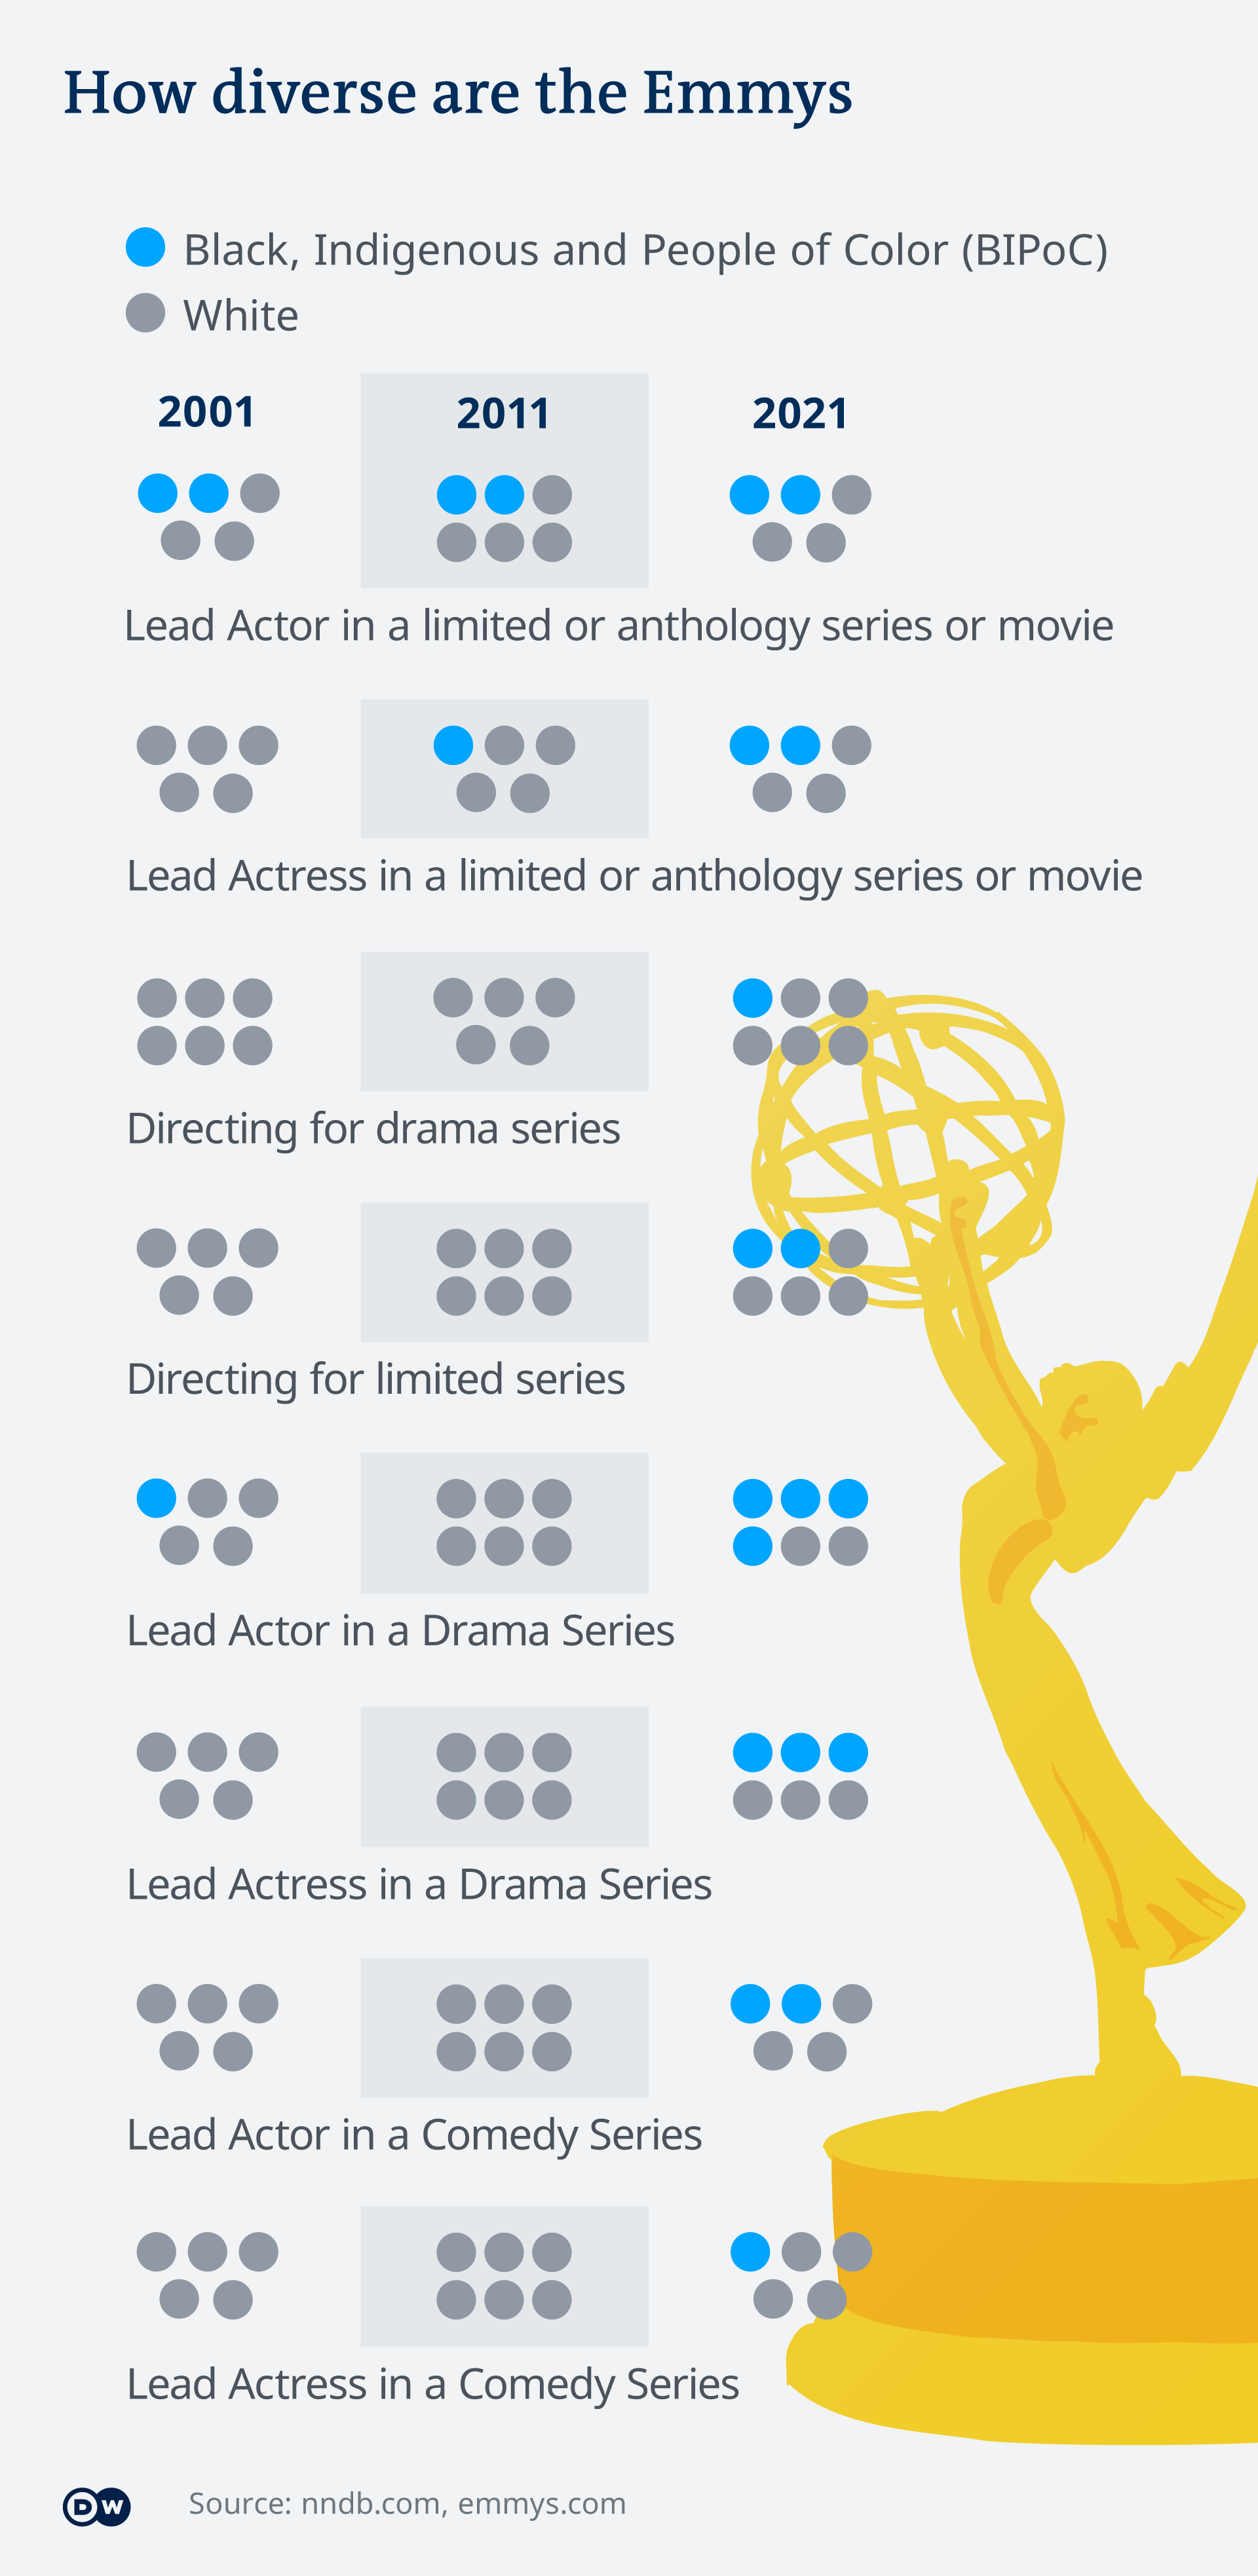 A schematic representation of BiPOC persons featuring in Emmy nominations